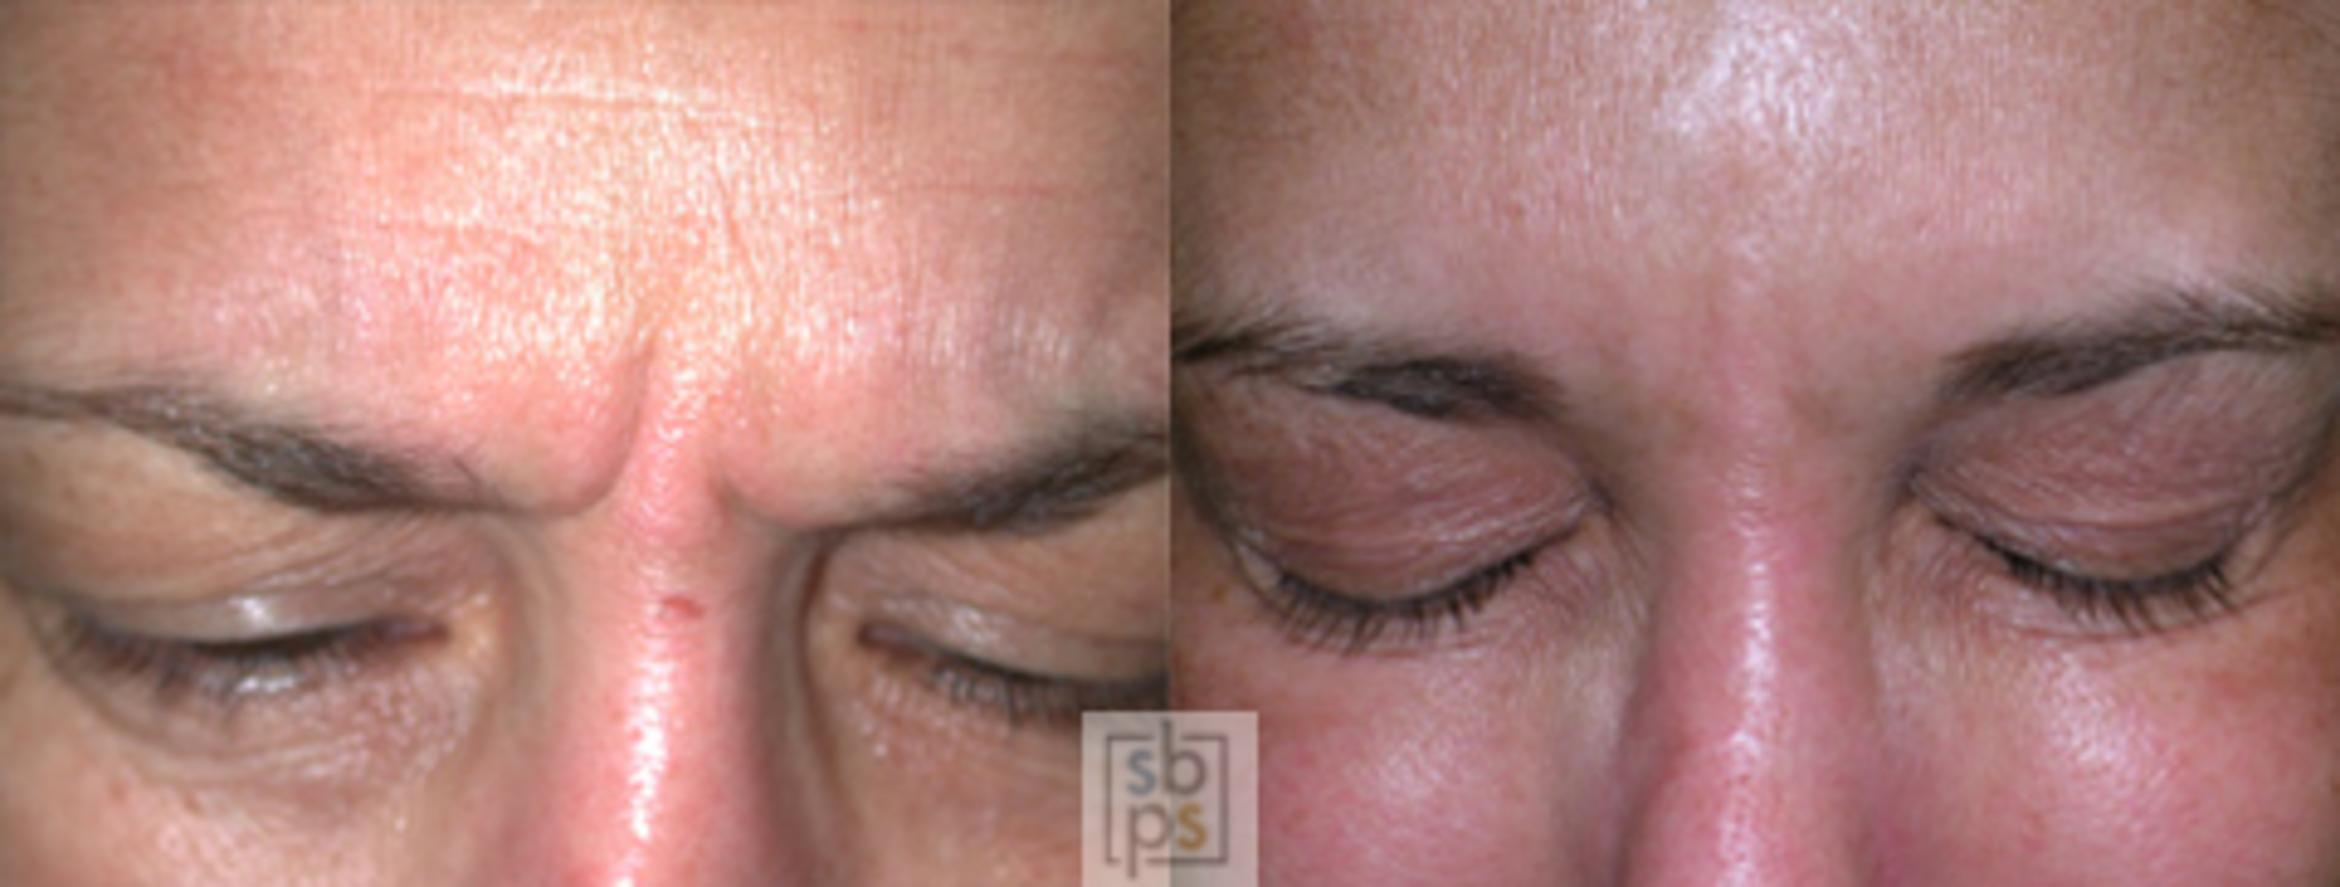 BOTOX® Cosmetic Before & After Photo | Torrance, CA | Plastic Surgery Source